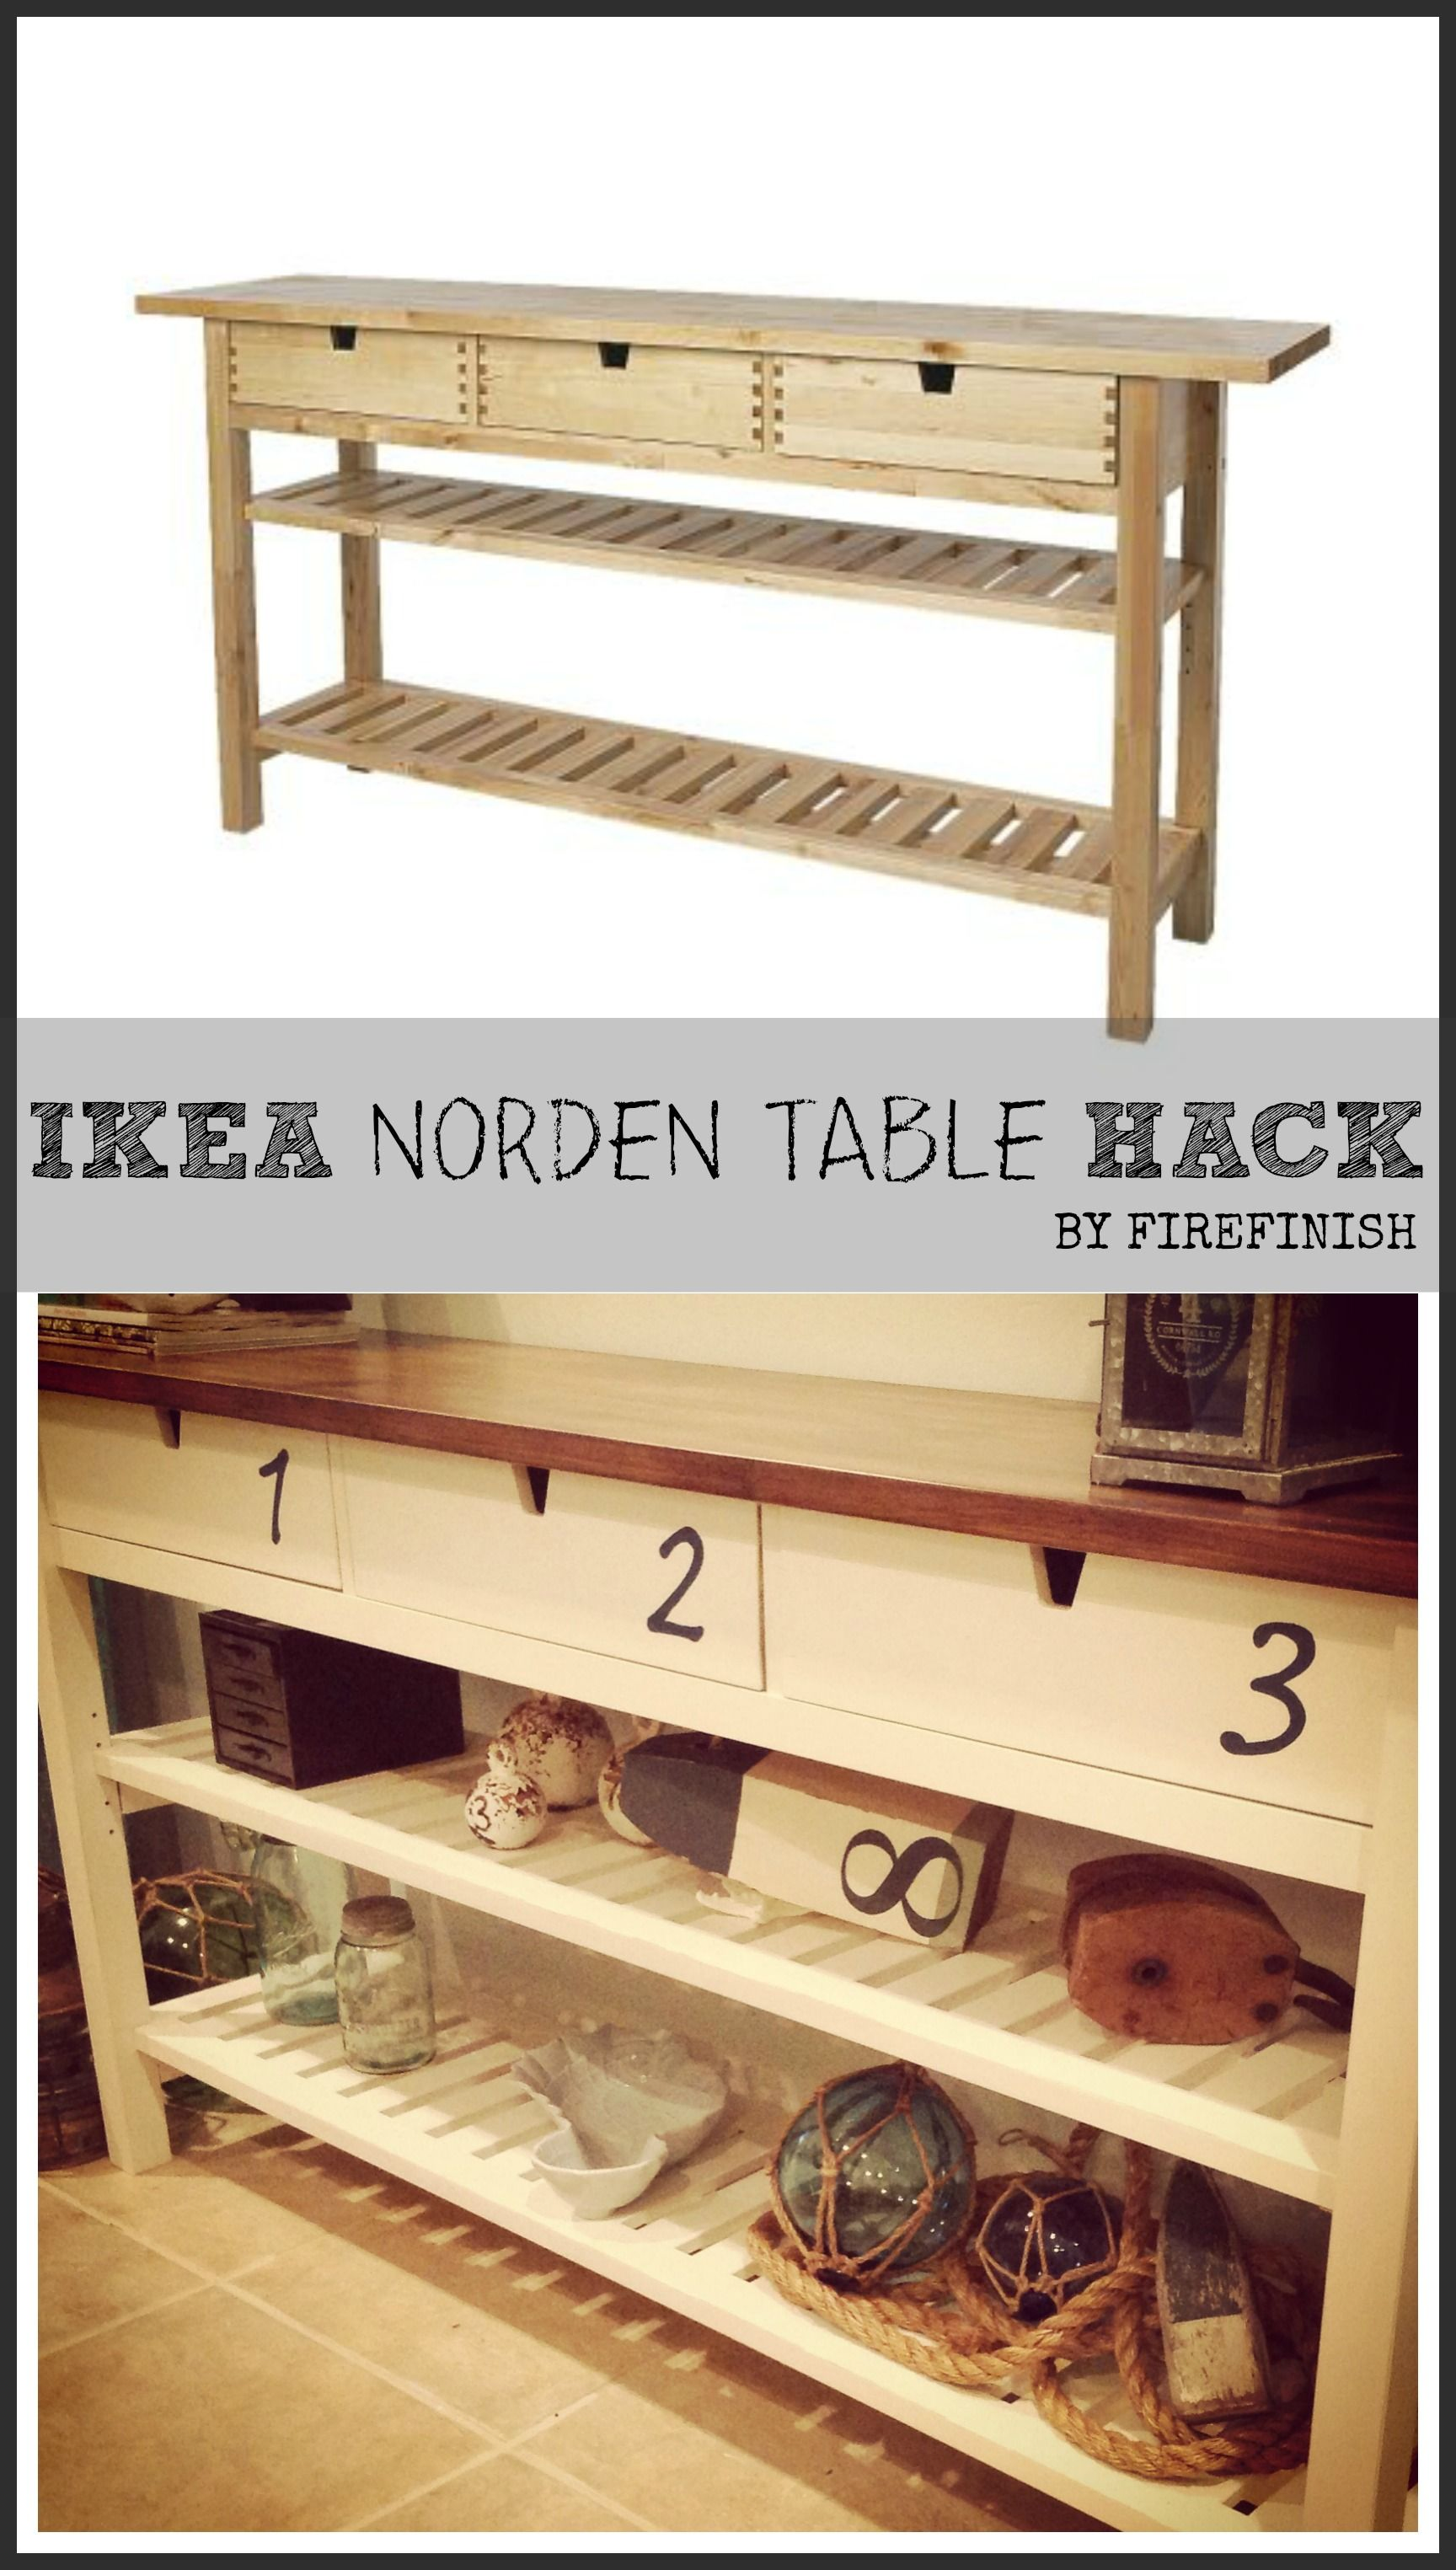 Ikea Hacknorden Table Hack Stained Top And Numbers Added Looks 100 Times Better Furniture Hacks Ikeahack